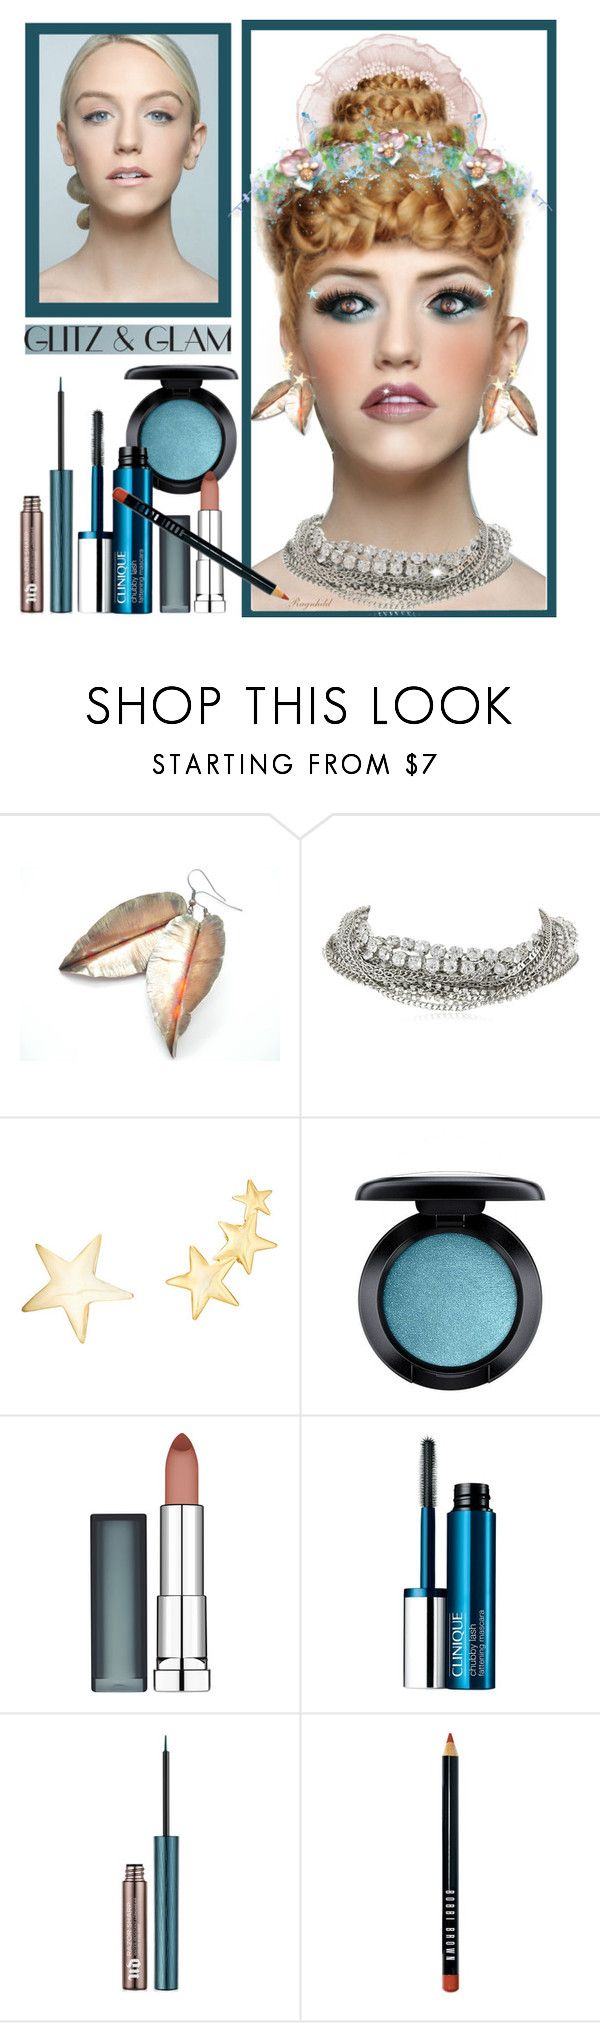 """""""Glam Makeover Contest!"""" by ragnh-mjos ❤ liked on Polyvore featuring beauty, ABS by Allen Schwartz, Kenneth Jay Lane, MAC Cosmetics, Maybelline, Clinique, Urban Decay and Bobbi Brown Cosmetics"""